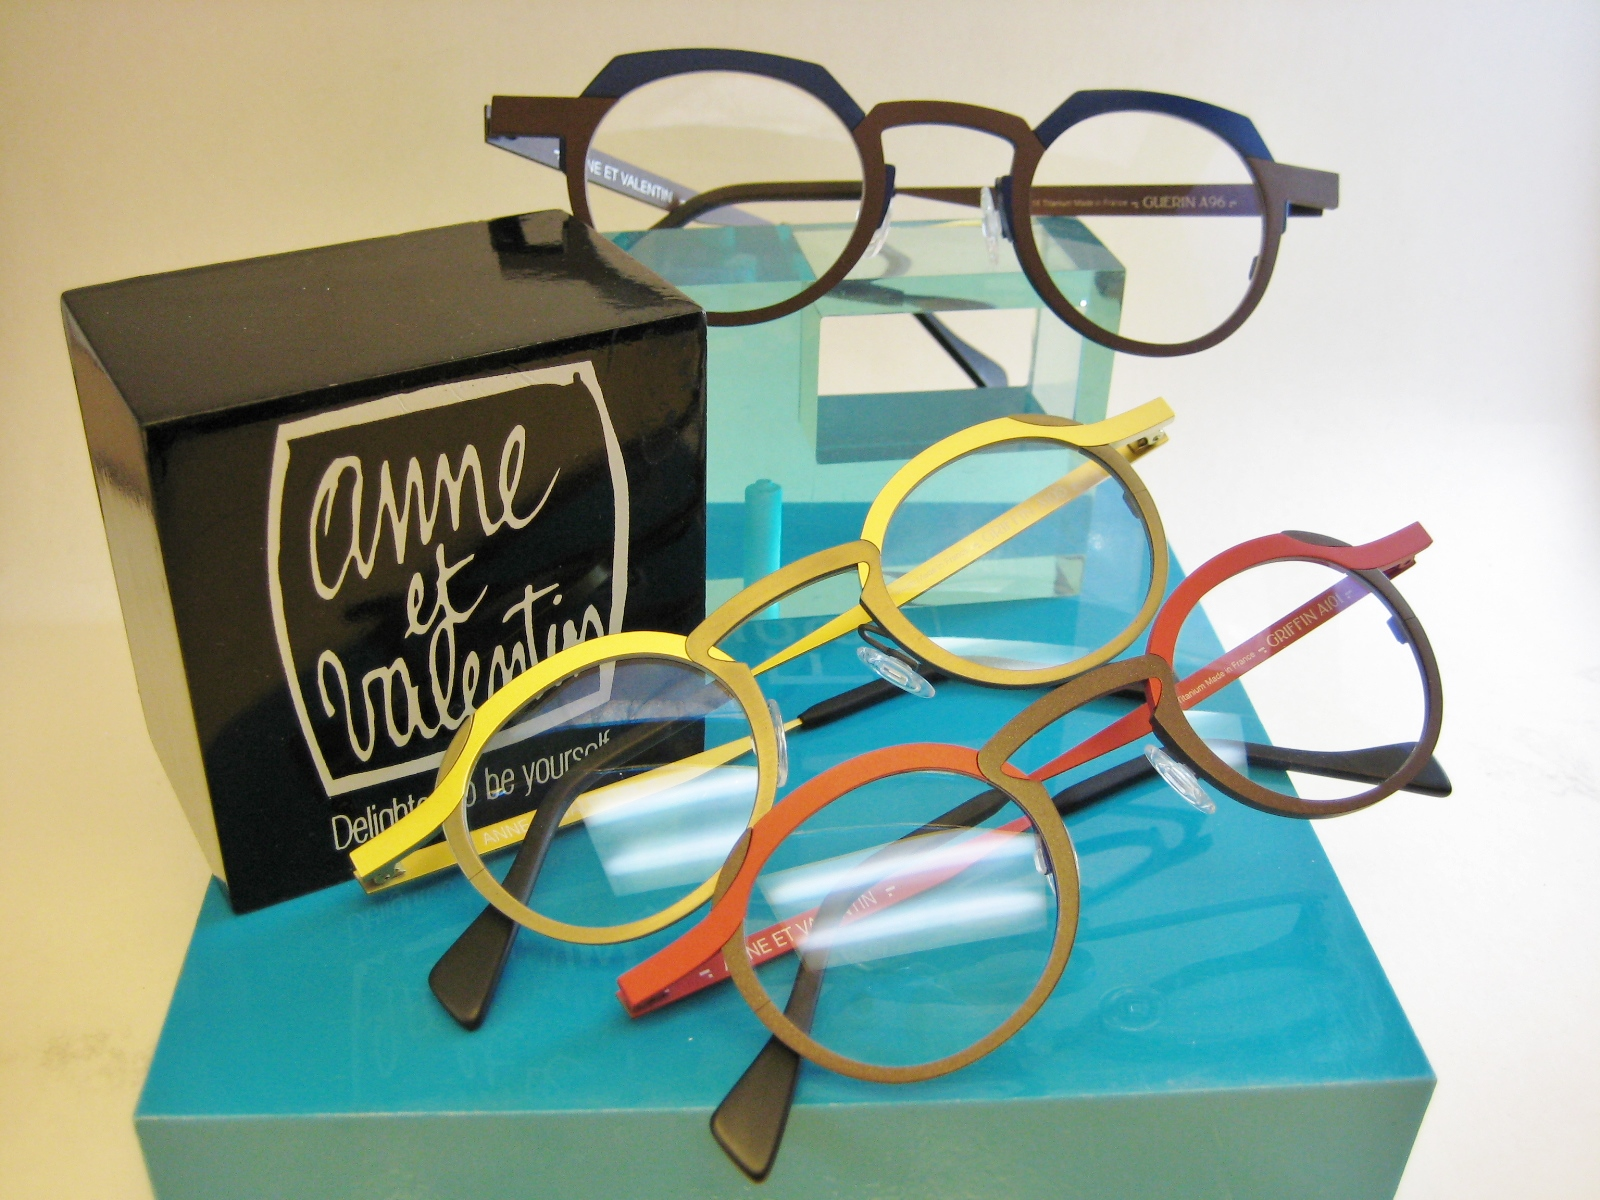 Anne et Valentin Trunk Show on Thurs., July 18th! | Eye Spy Optical